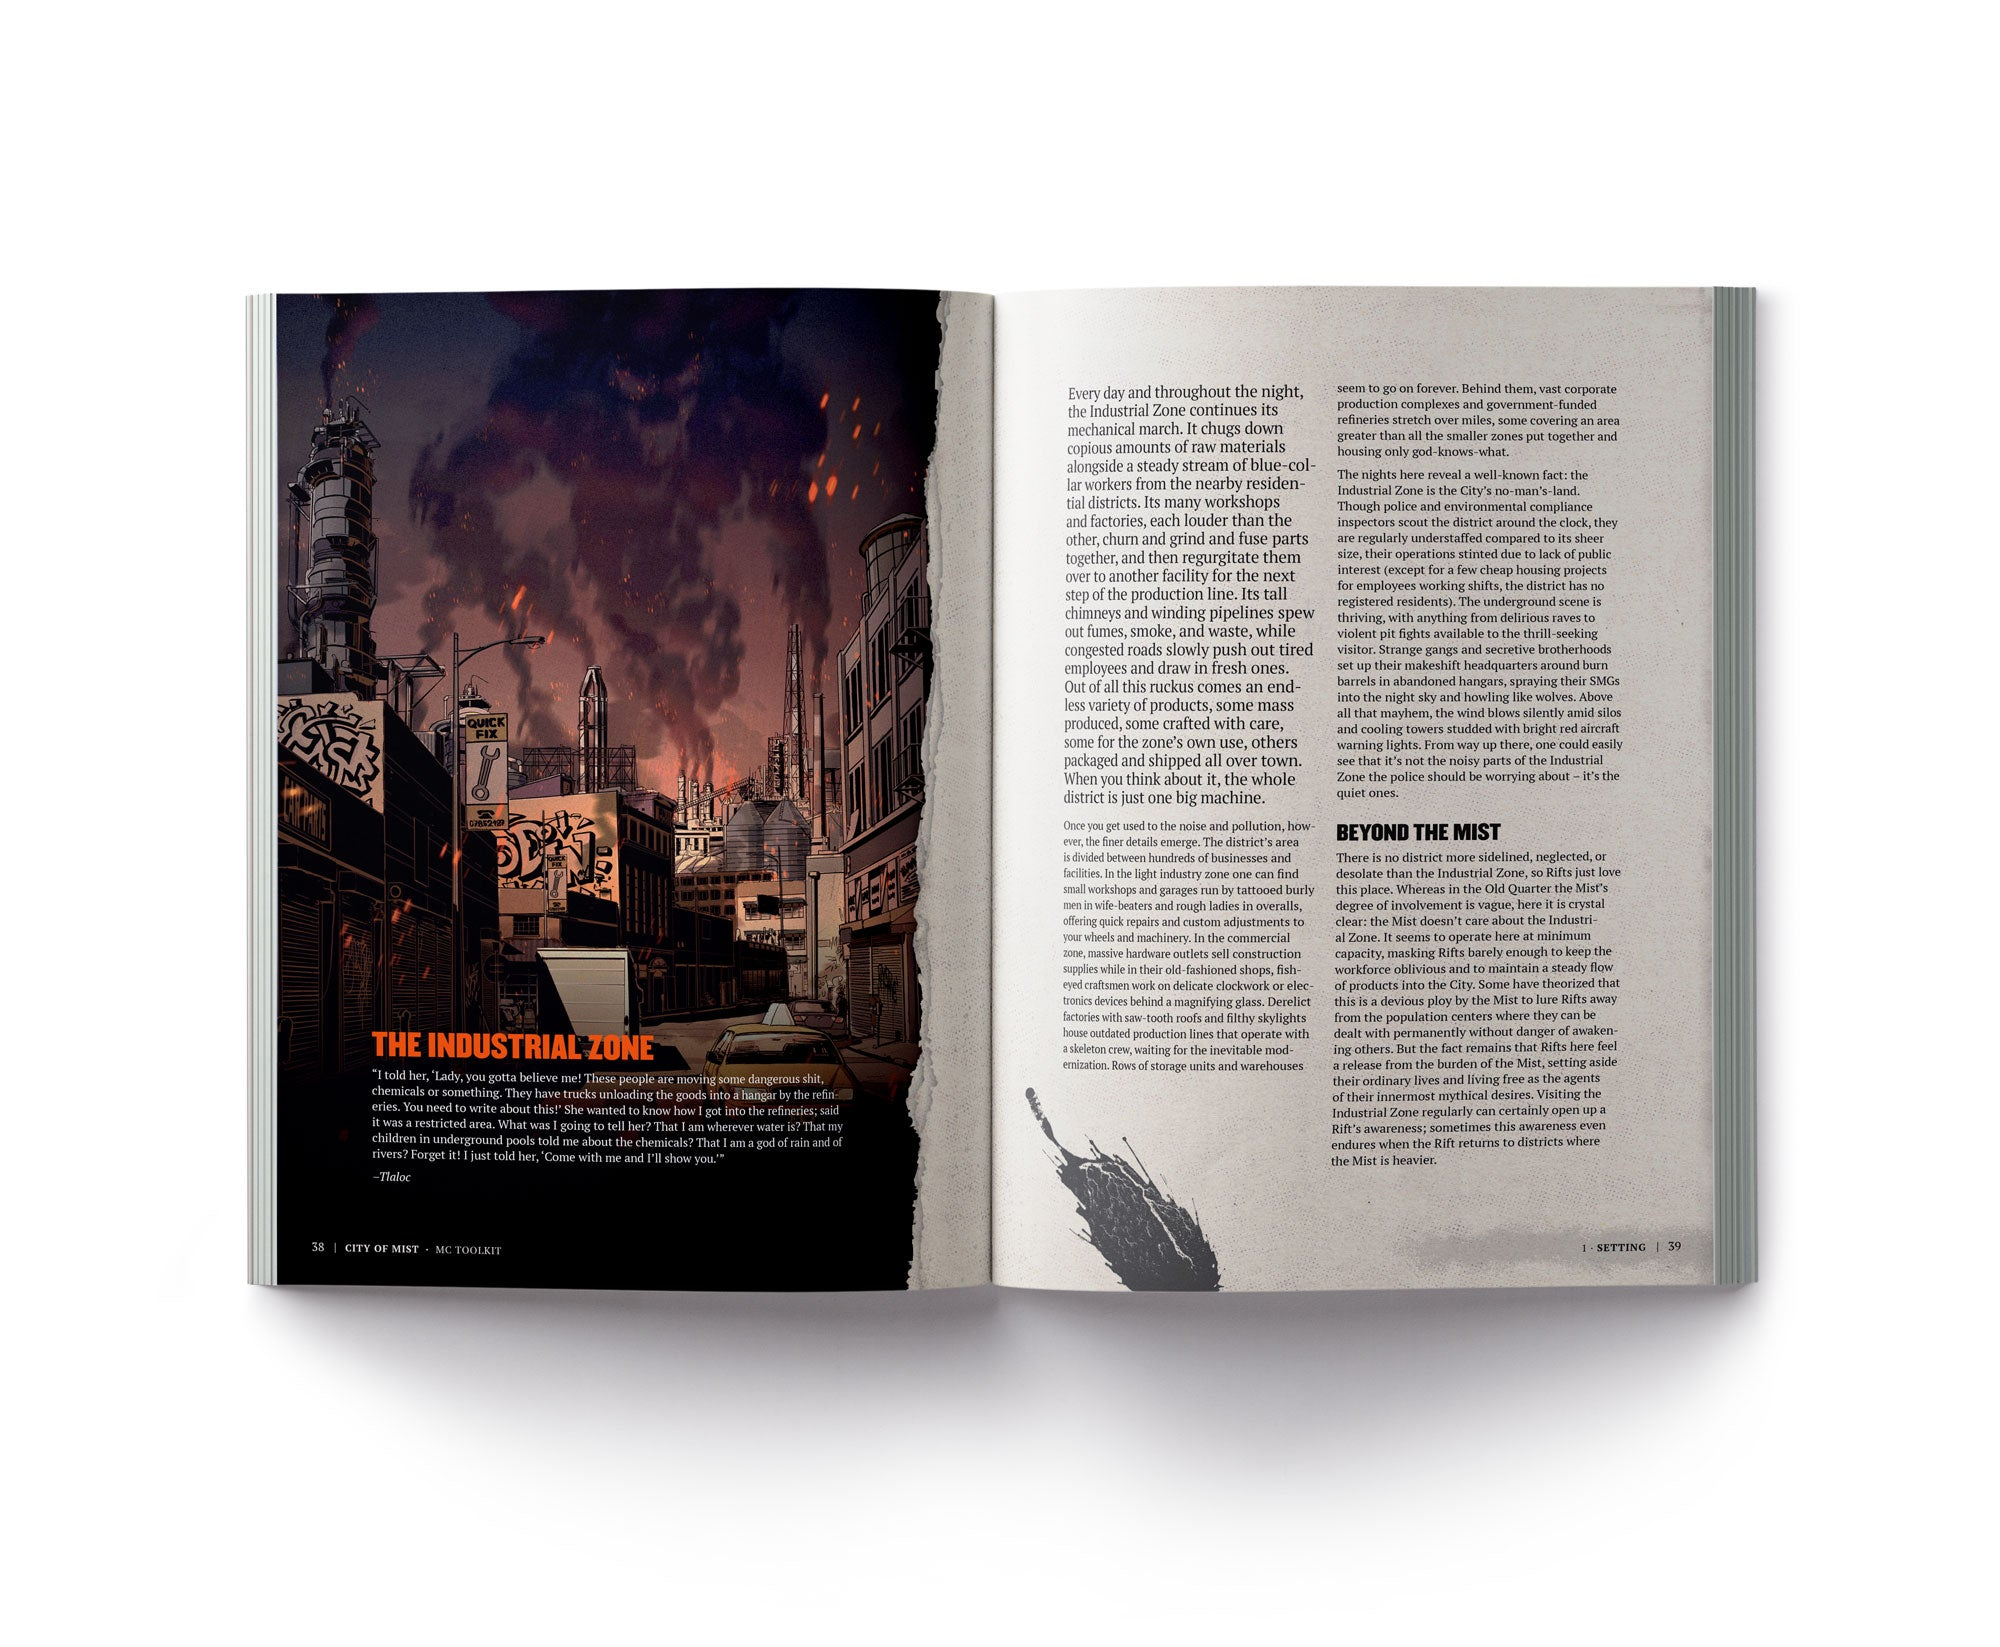 Book-mock-up-8.jpg